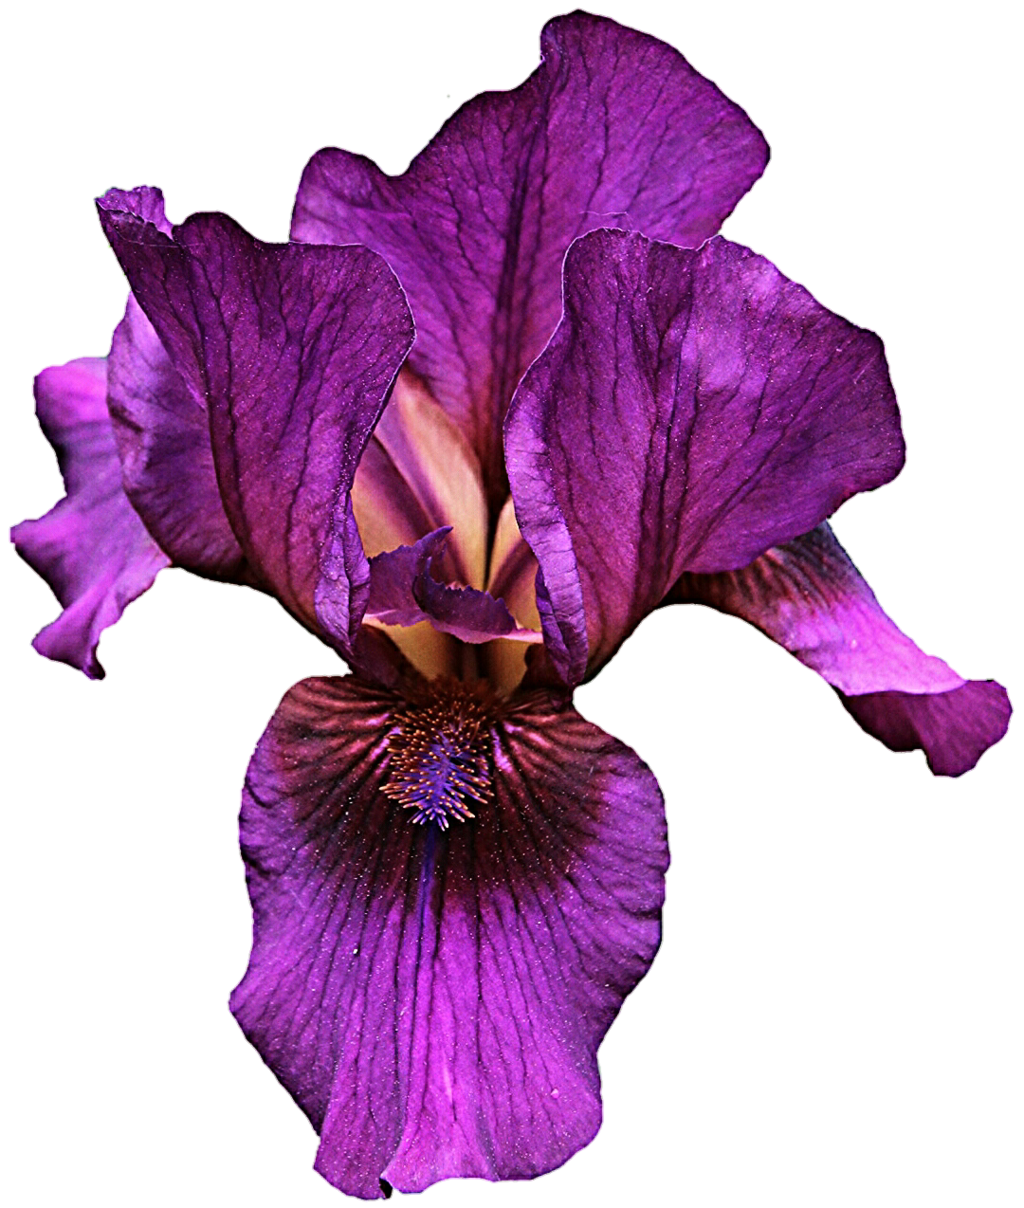 Iris flower clipart graphic free download Iris Flower Clipart at GetDrawings.com | Free for personal use Iris ... graphic free download